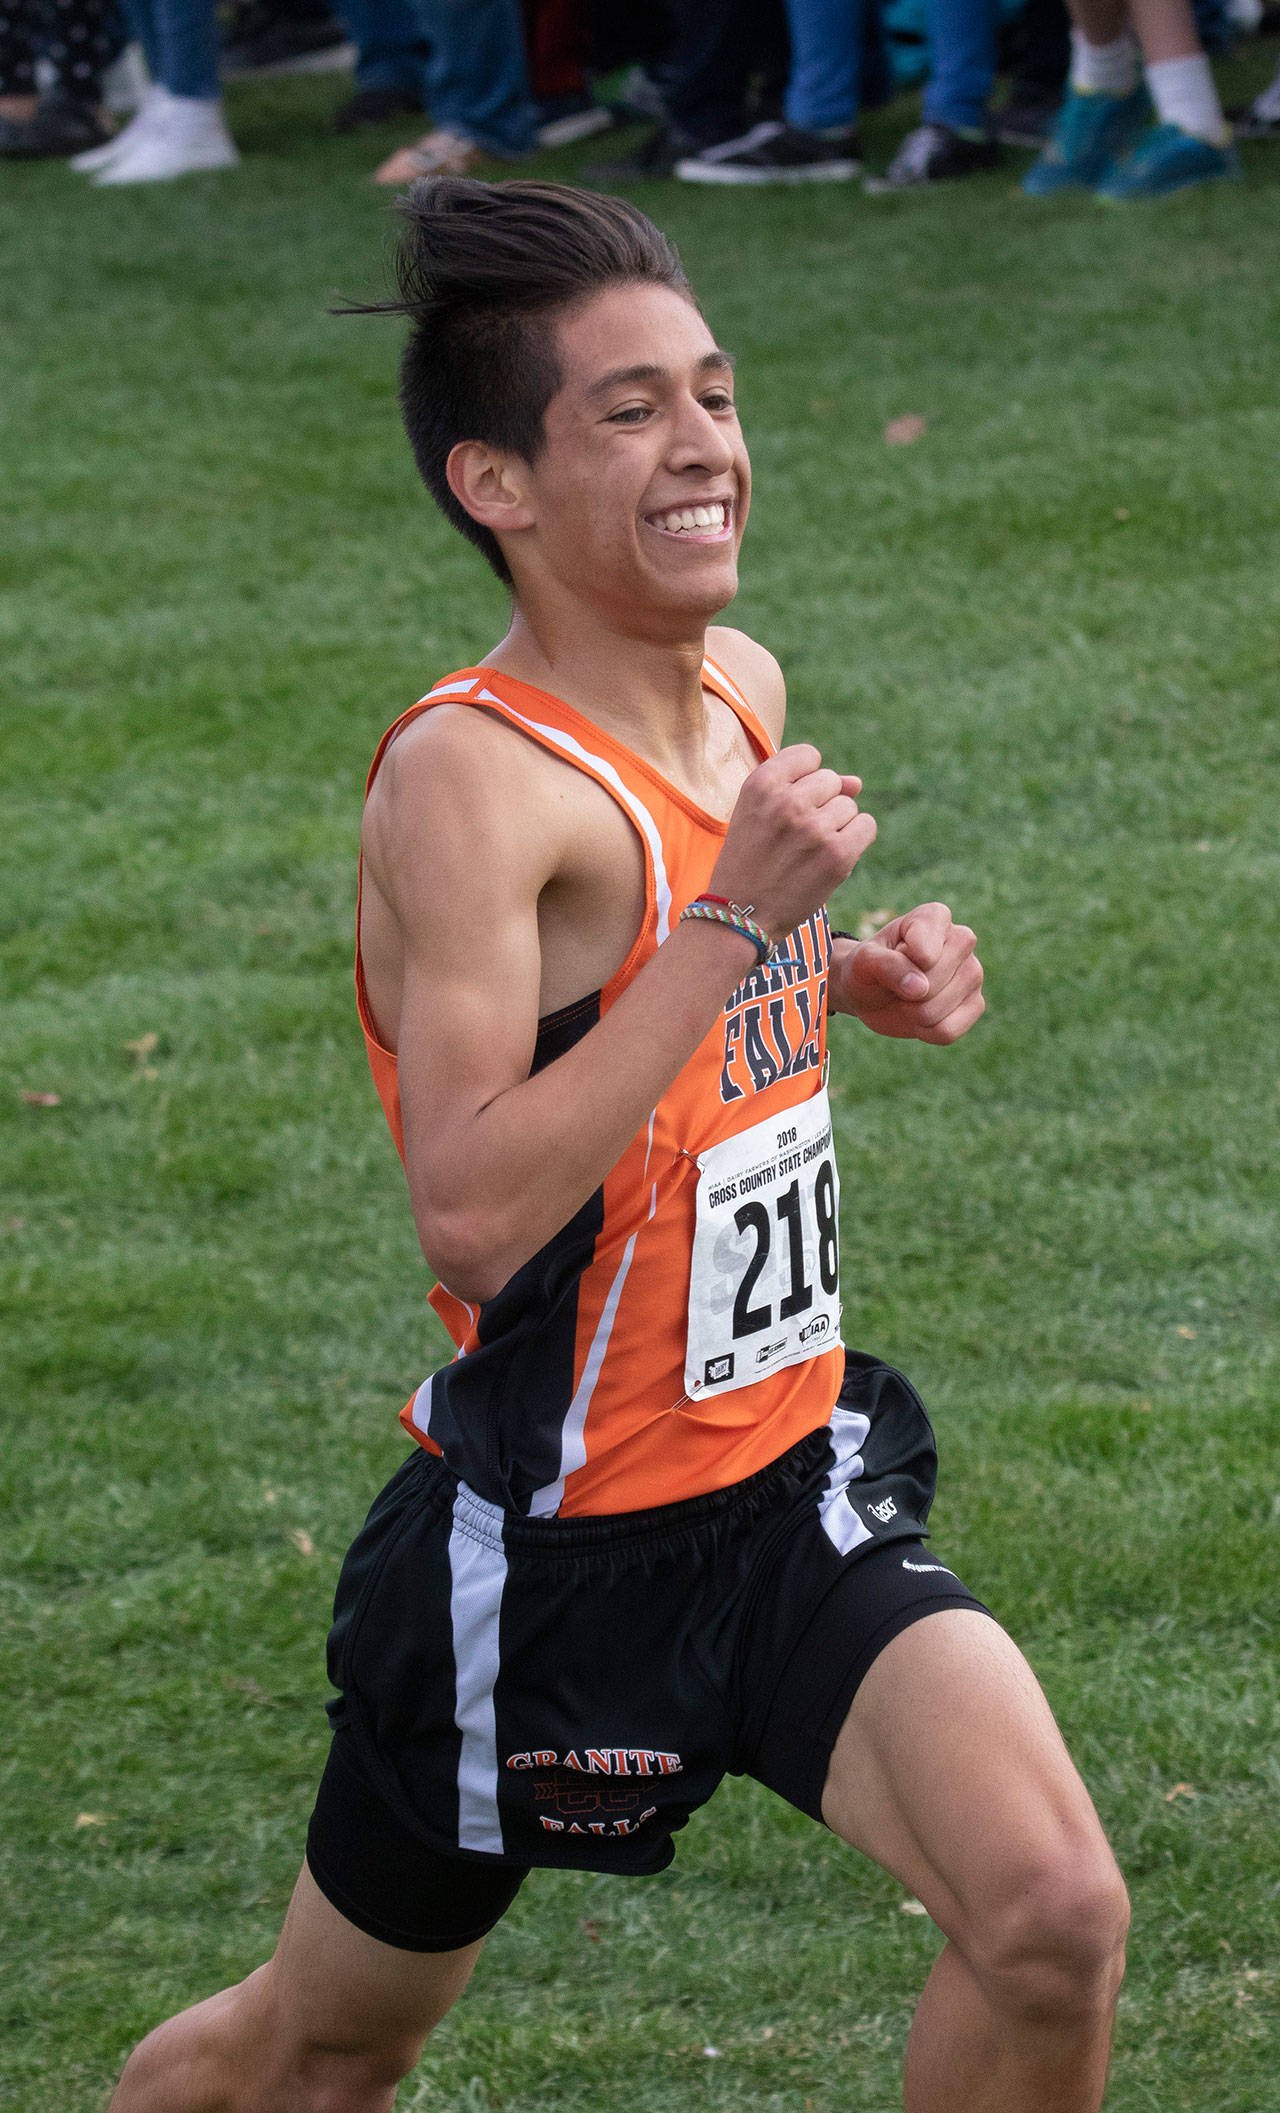 Granite Falls' Isaac Cortes runs in the 1A boys state cross country championship meet Saturday at Sun Willows Golf Course in Pasco. (TJ Mullinax / for The Herald)